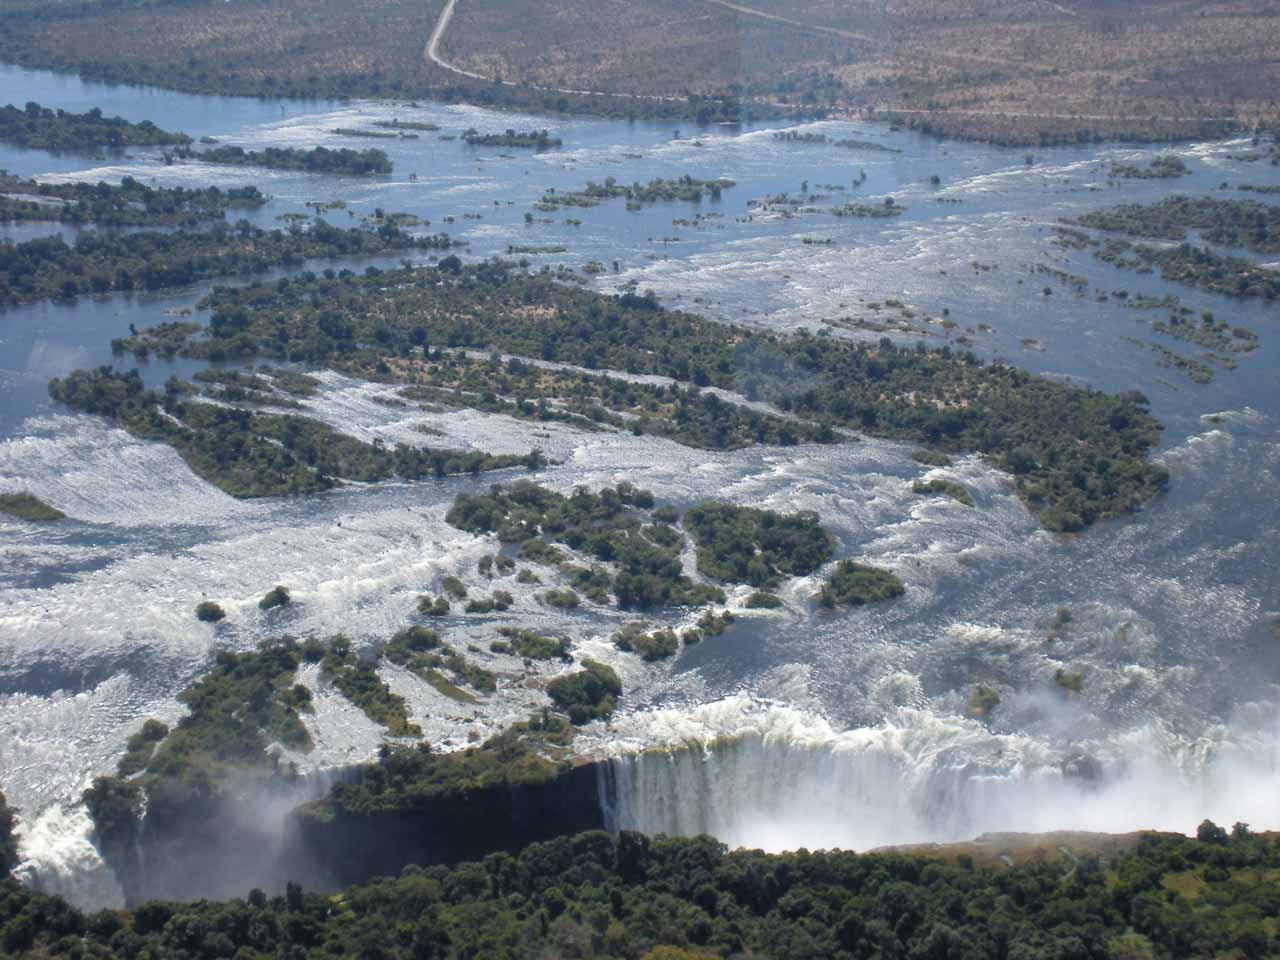 Looking at the whitewater upstream from the Vic Falls